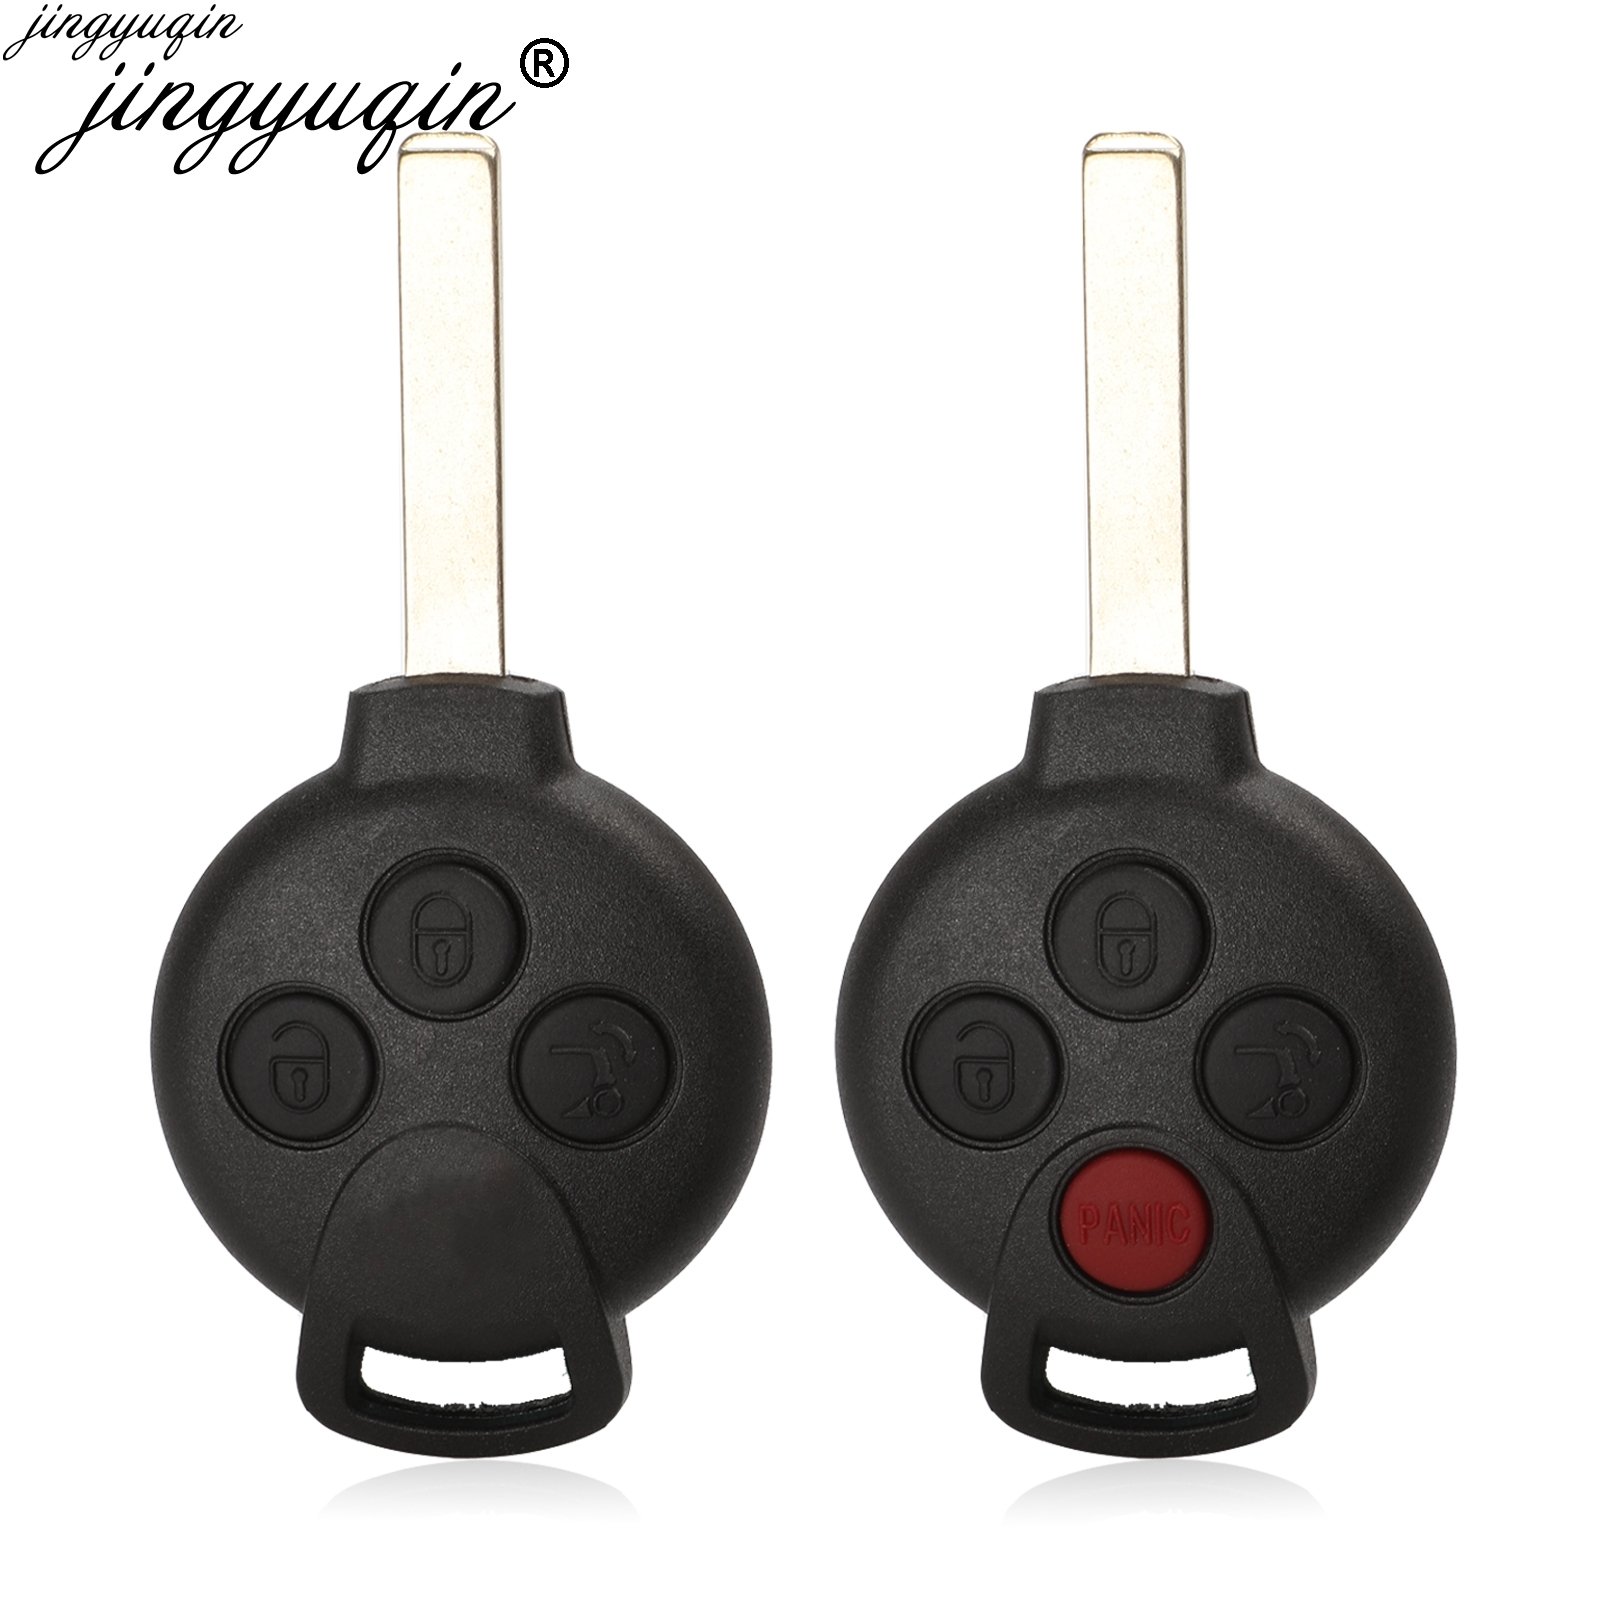 3/4 Buttons Car Remote Key Shell Case Fob for MERCEDES BENZ <font><b>MB</b></font> SMART CAR CITY ROADSTER FORTWO Auto Replacement Key image